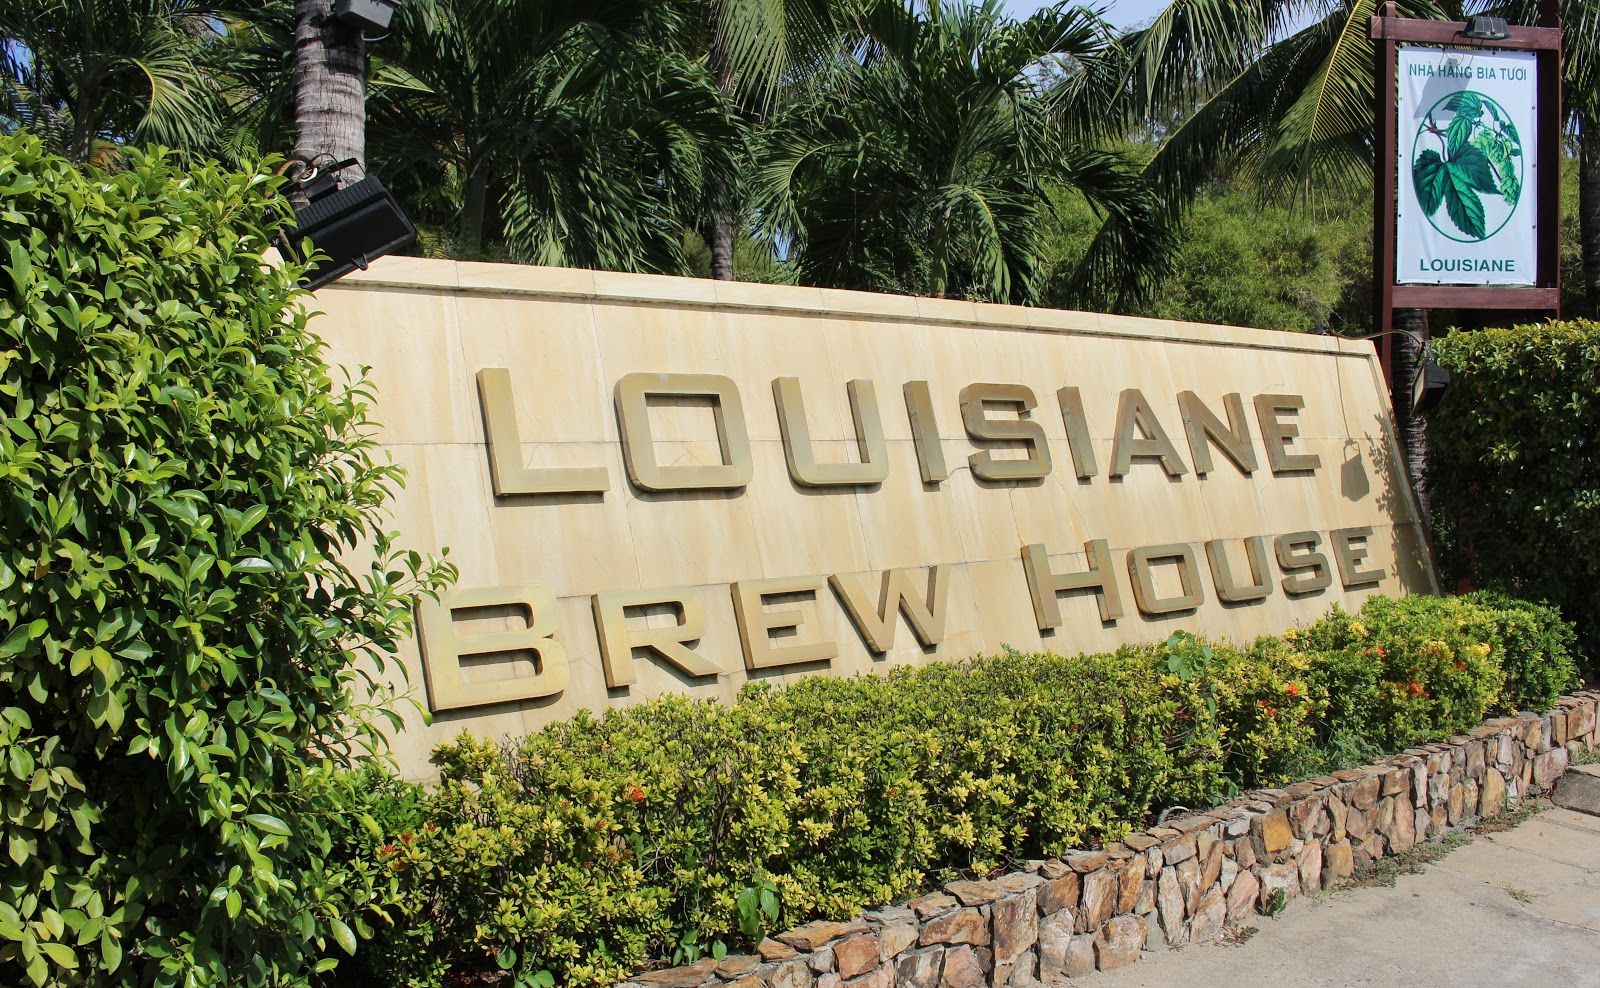 Louisiane Brewhouse Nha Trang Vietnam Travel Guide